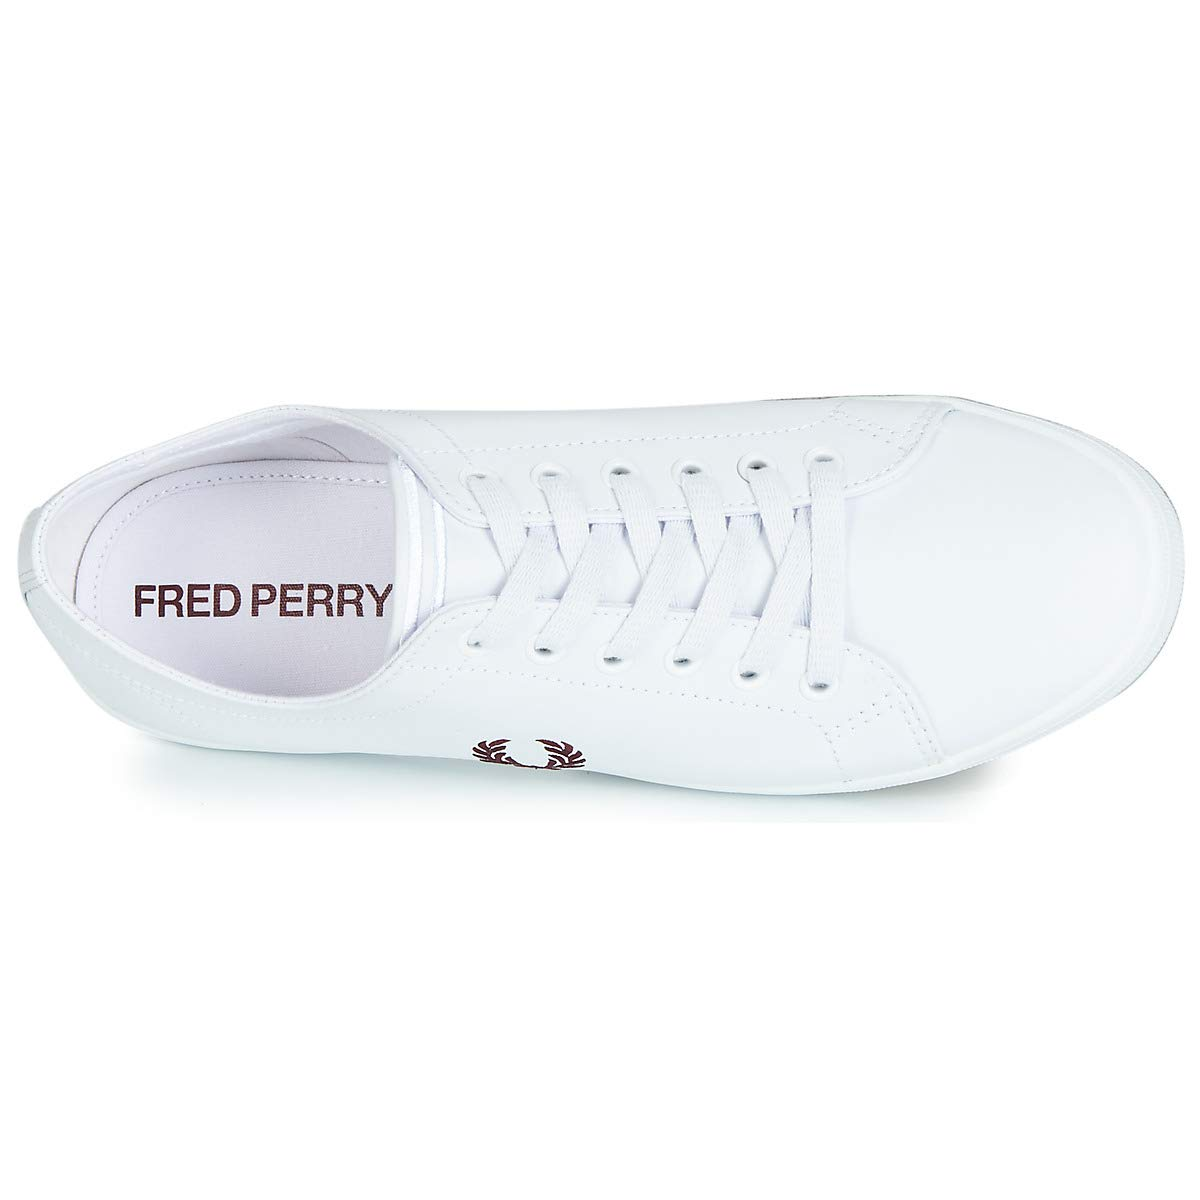 Frot Perry Kingston Burgundy Leather Weiß Burgundy Kingston 609783